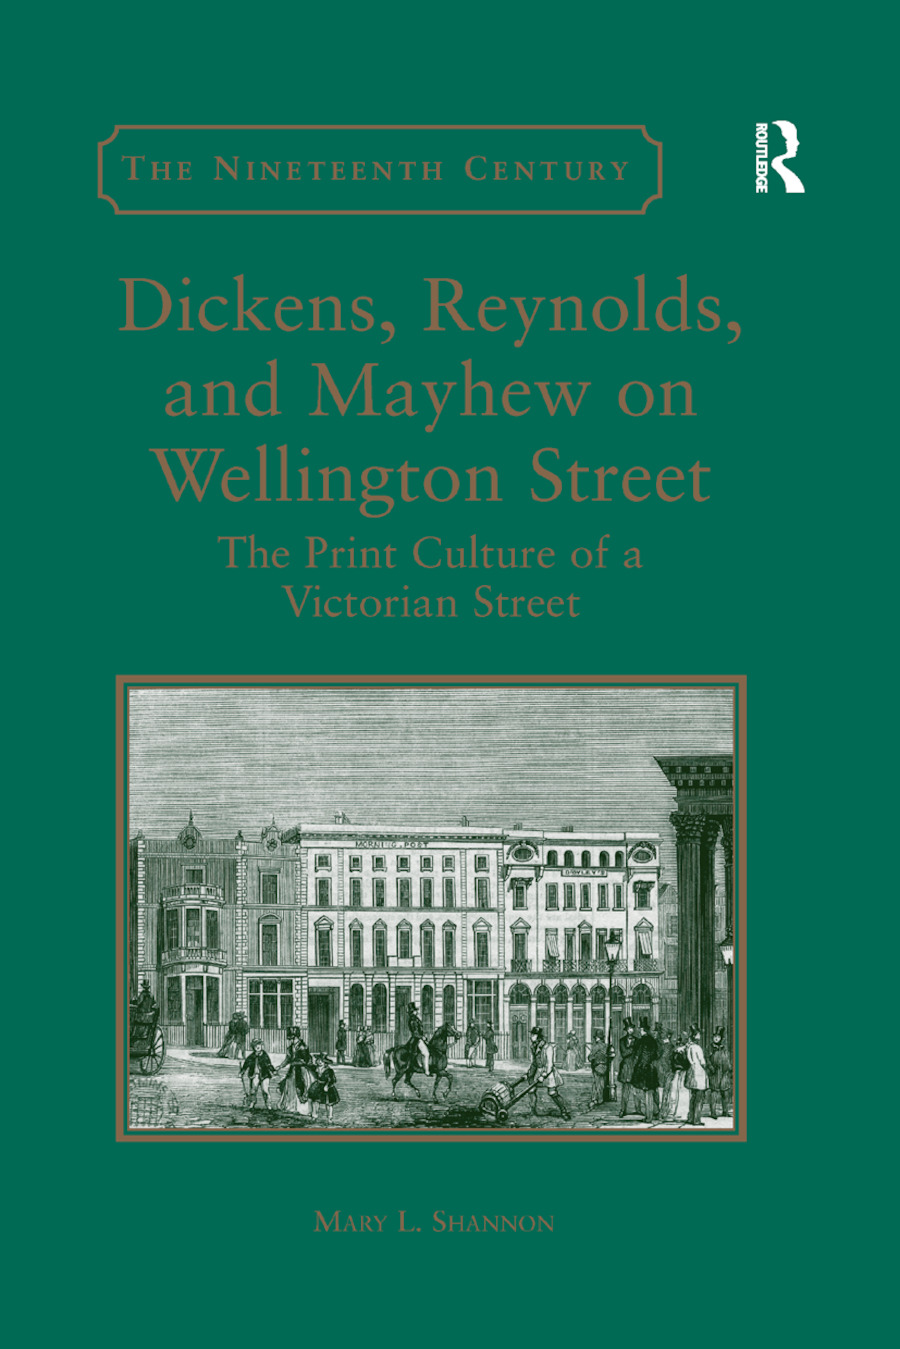 Dickens, Reynolds, and Mayhew on Wellington Street: The Print Culture of a Victorian Street book cover